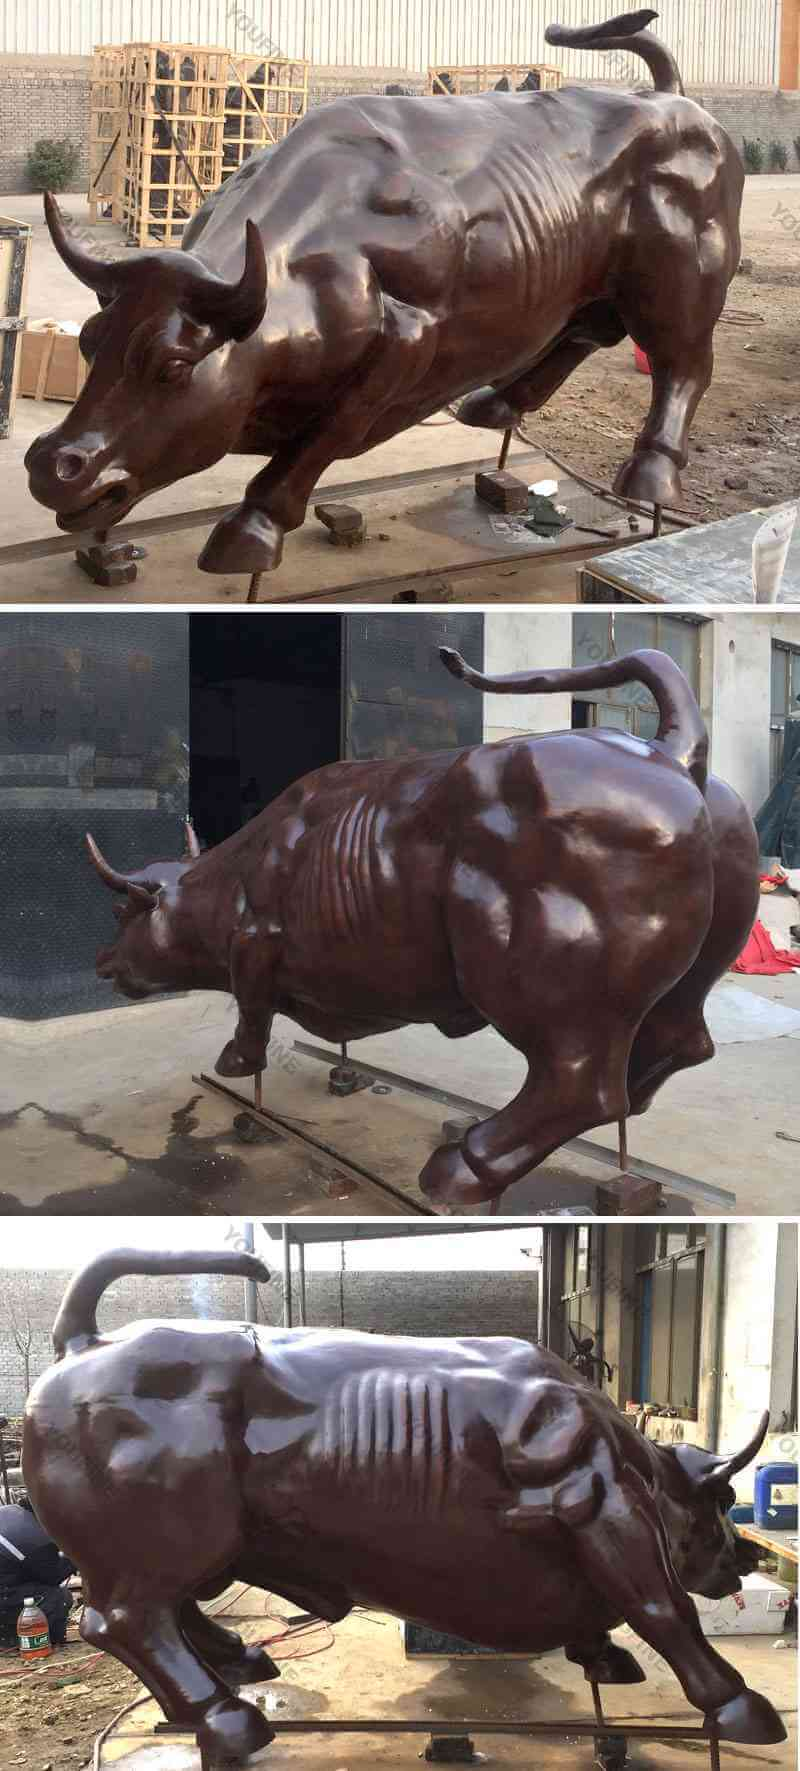 Outdoor brave wall street bull statue bronze animal sculptures for sale